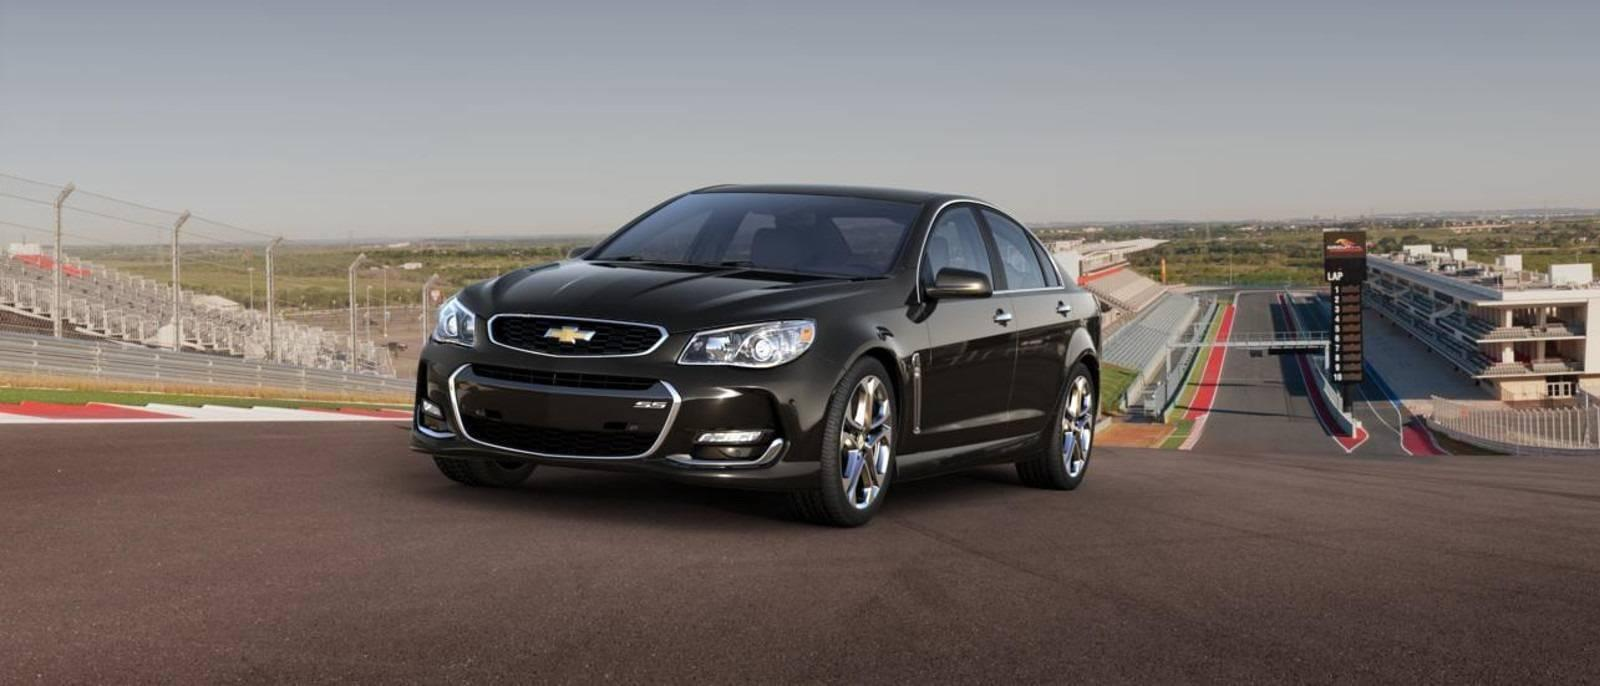 2017 Chevrolet Ss In Flint And Clio Mi